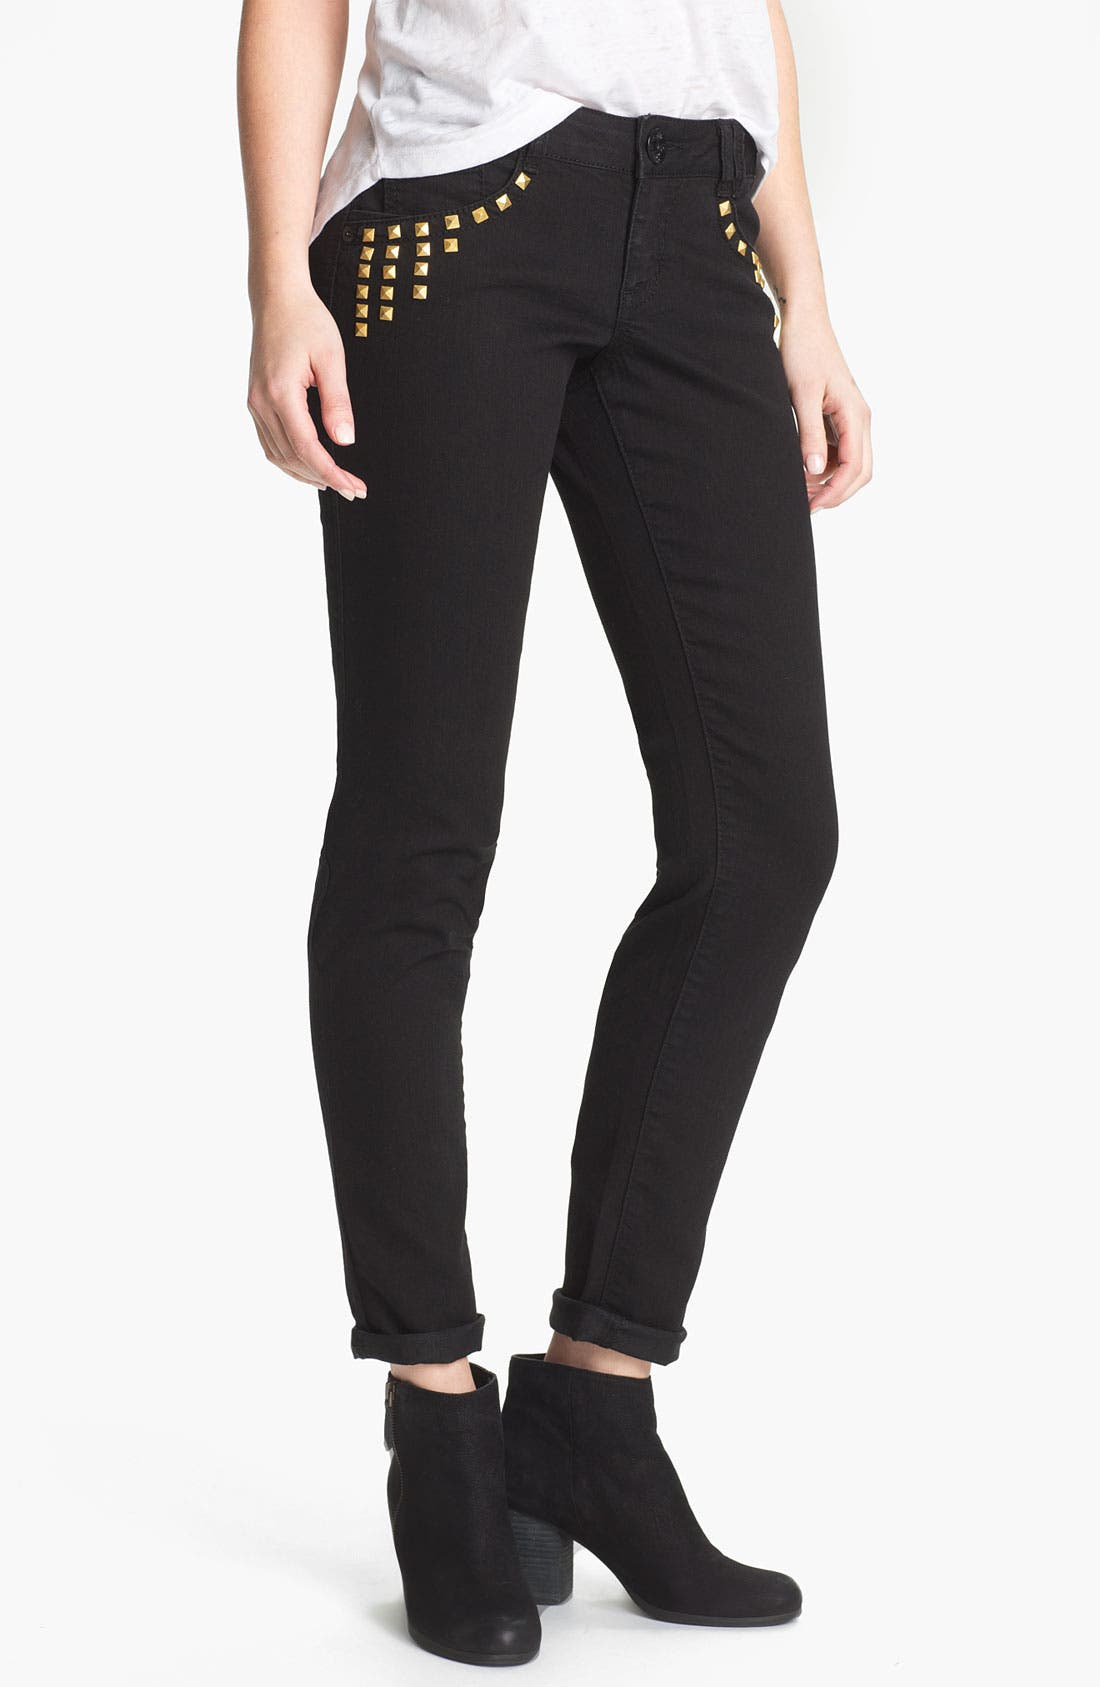 Alternate Image 1 Selected - Jolt Studded Skinny Jeans (Juniors)